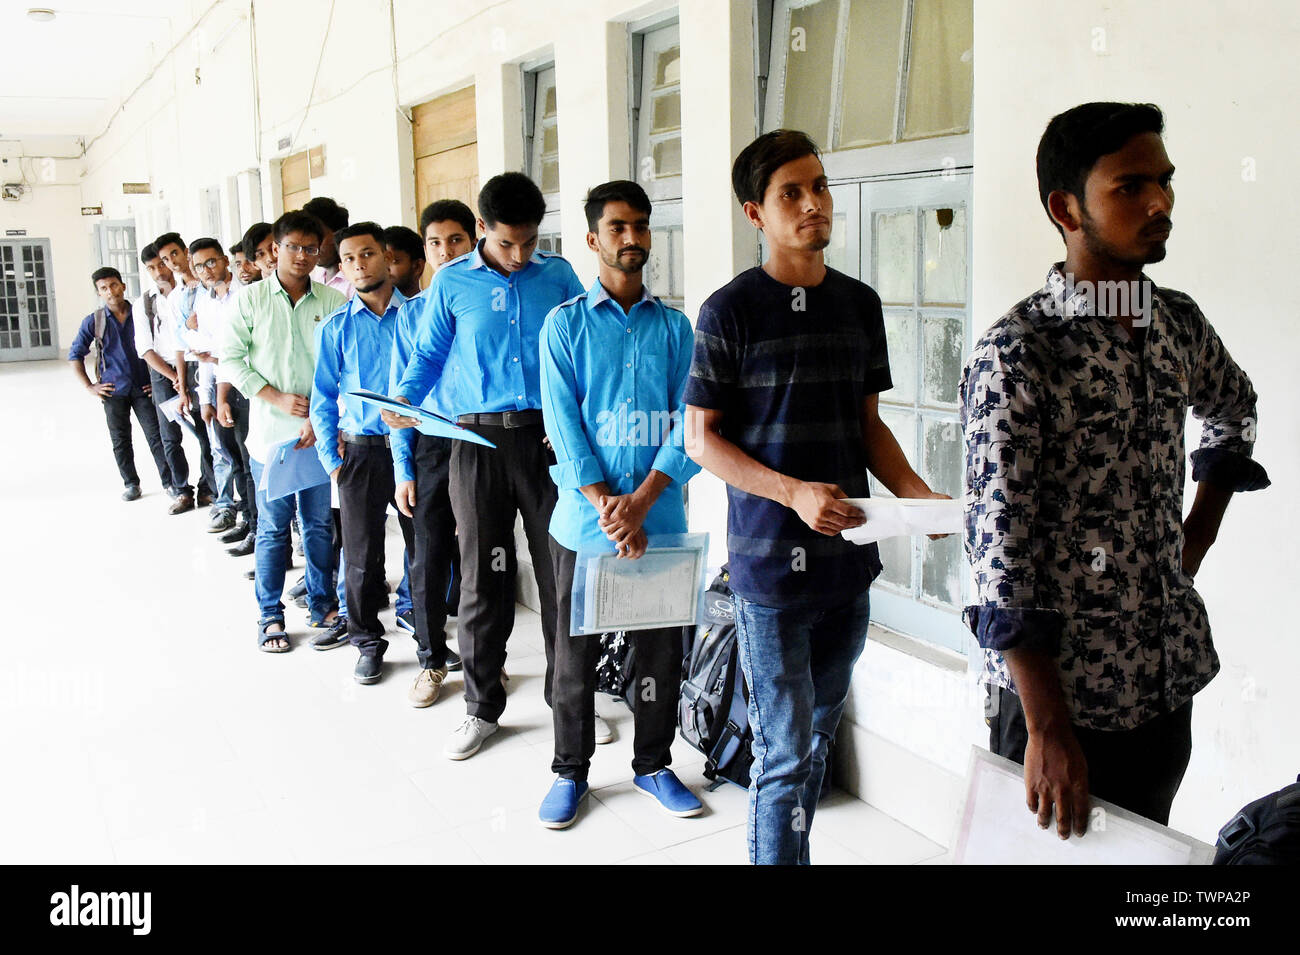 Dhaka, Bangladesh  21st June, 2019  Applicants queue up for